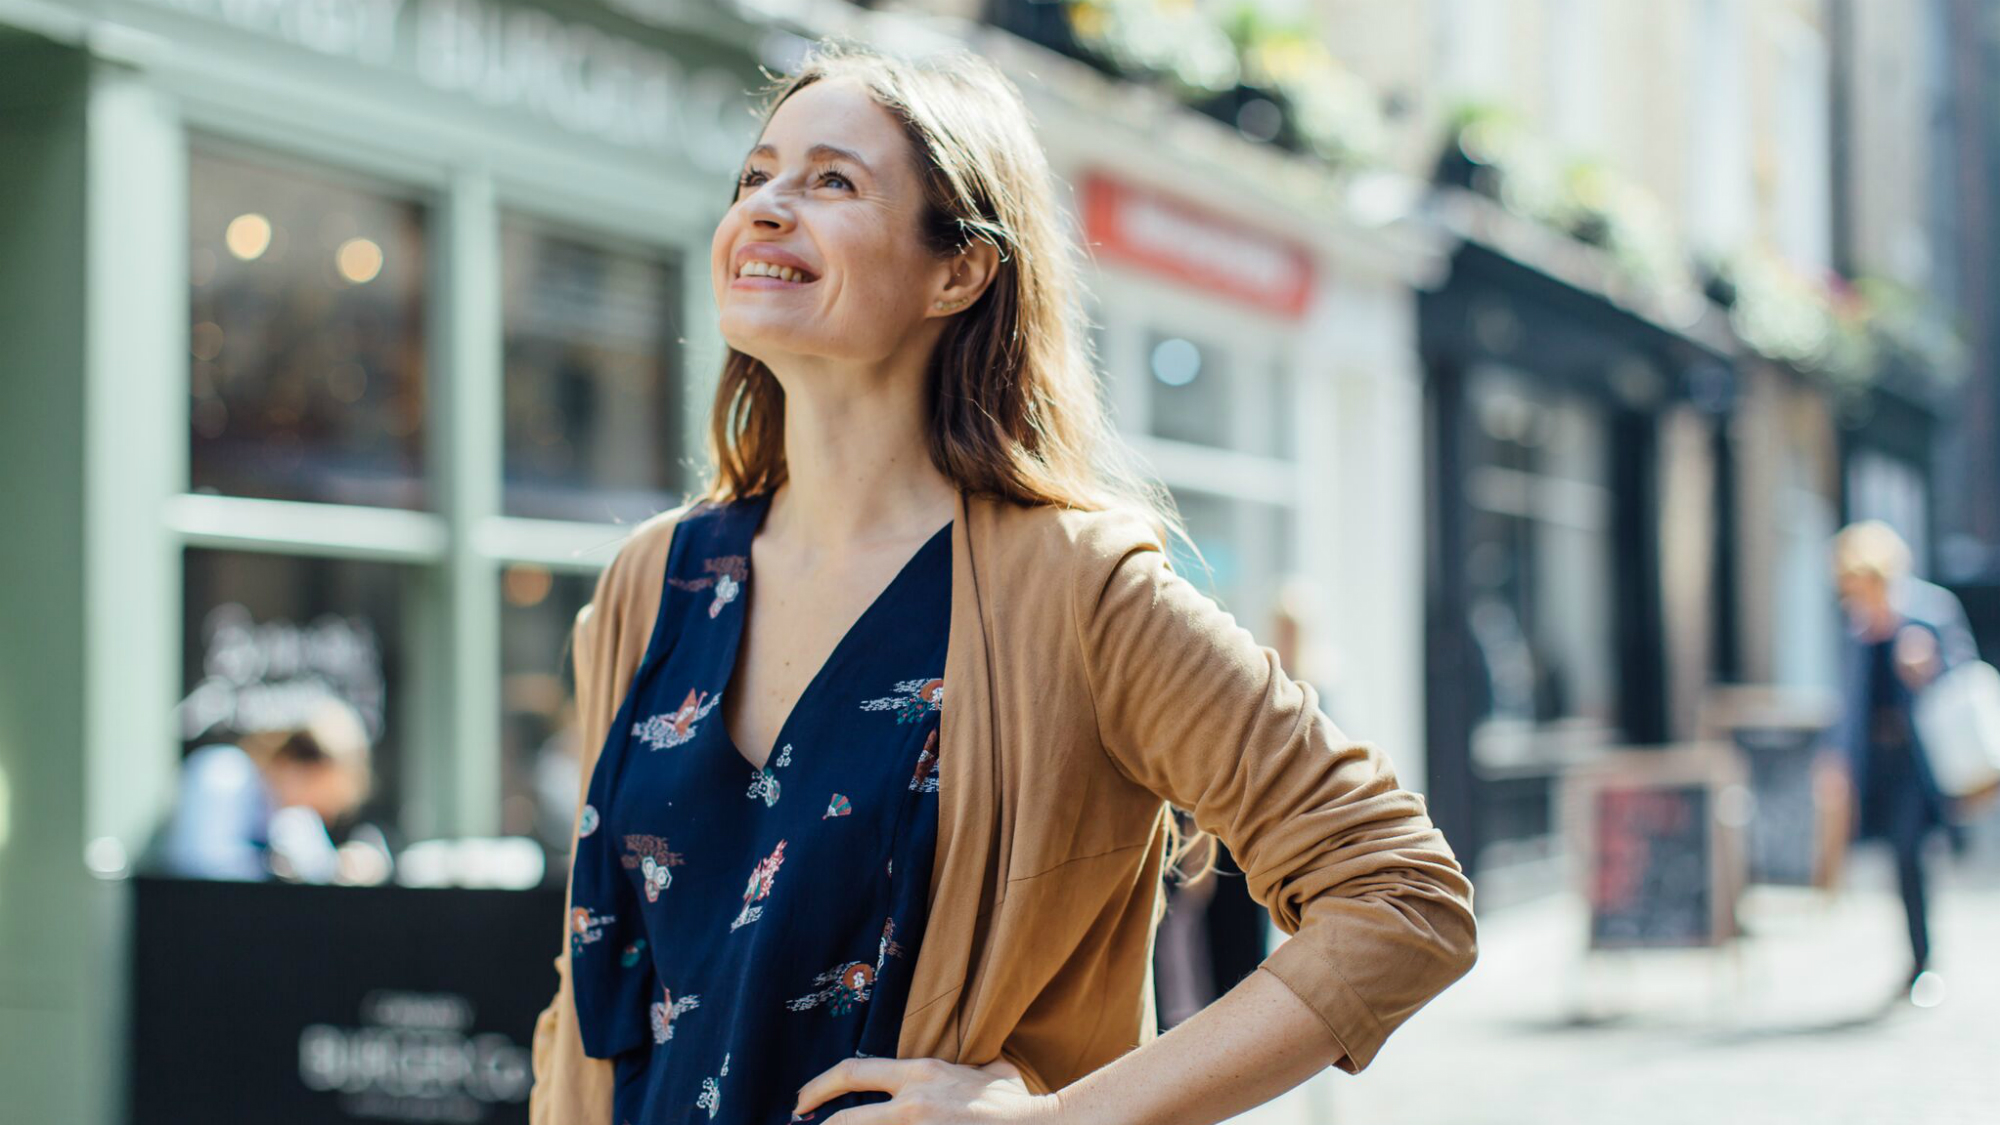 Andrea Thompson Hot 1 in 5 of us battle anxiety so we asked a meditation expert